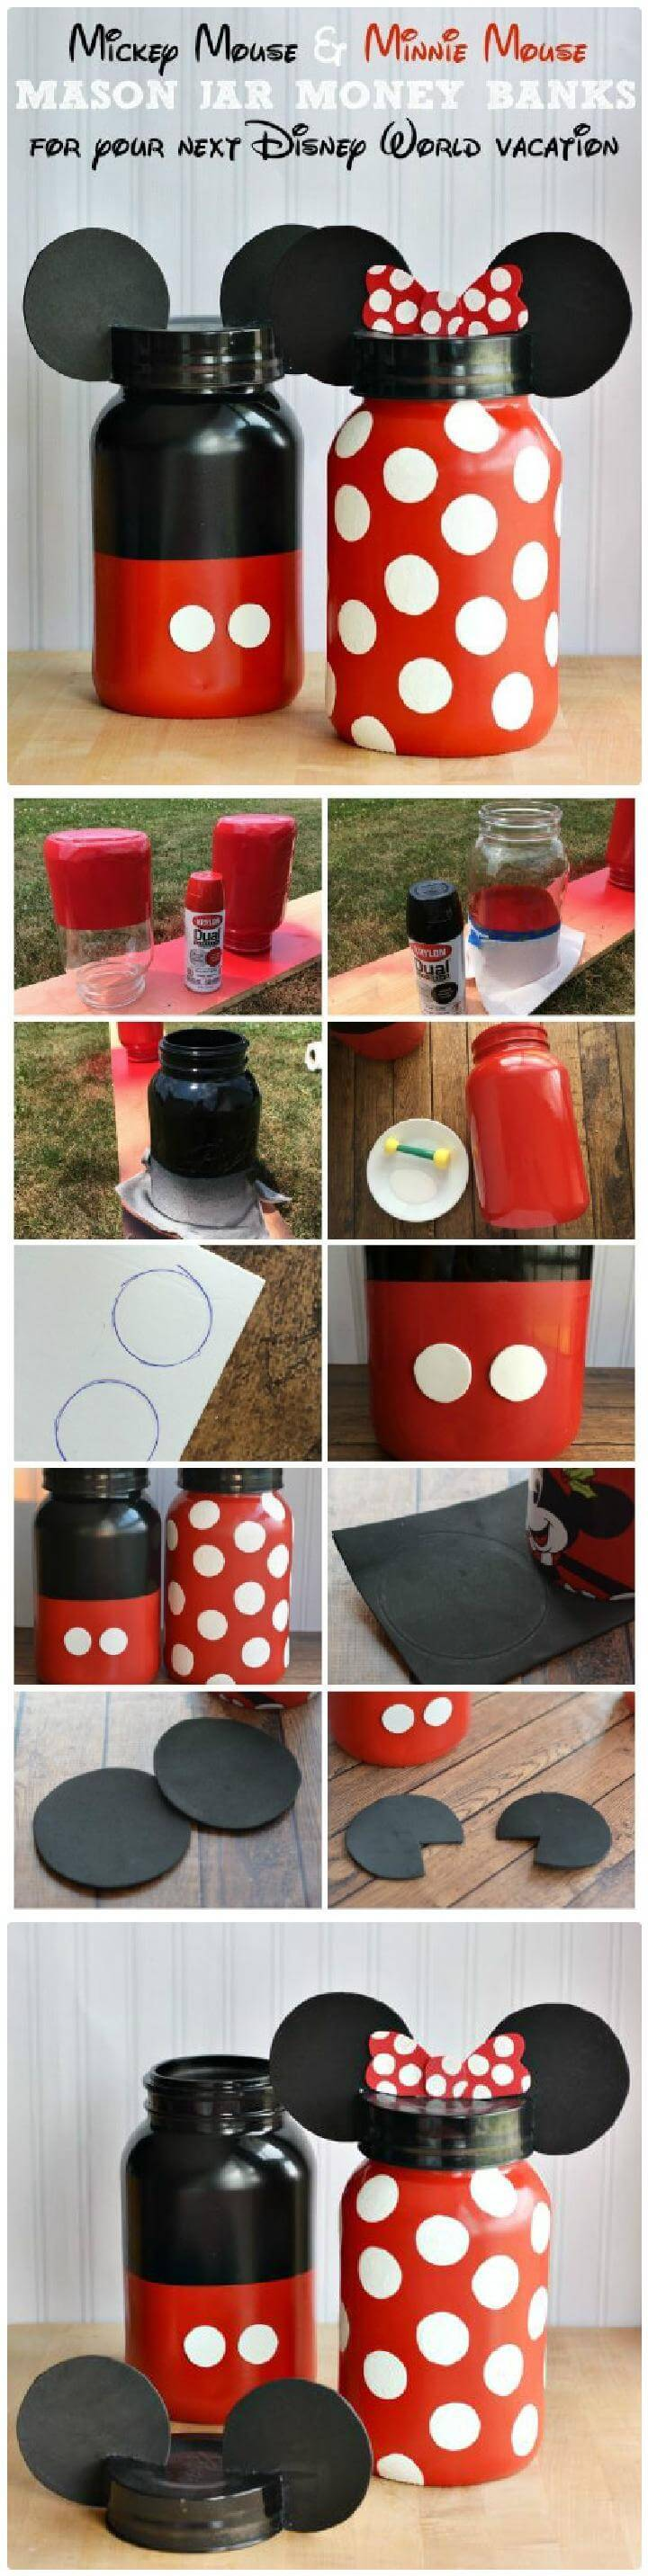 DIY Adorable Minnie and Mickey Mouse Mason Jar Money Banks